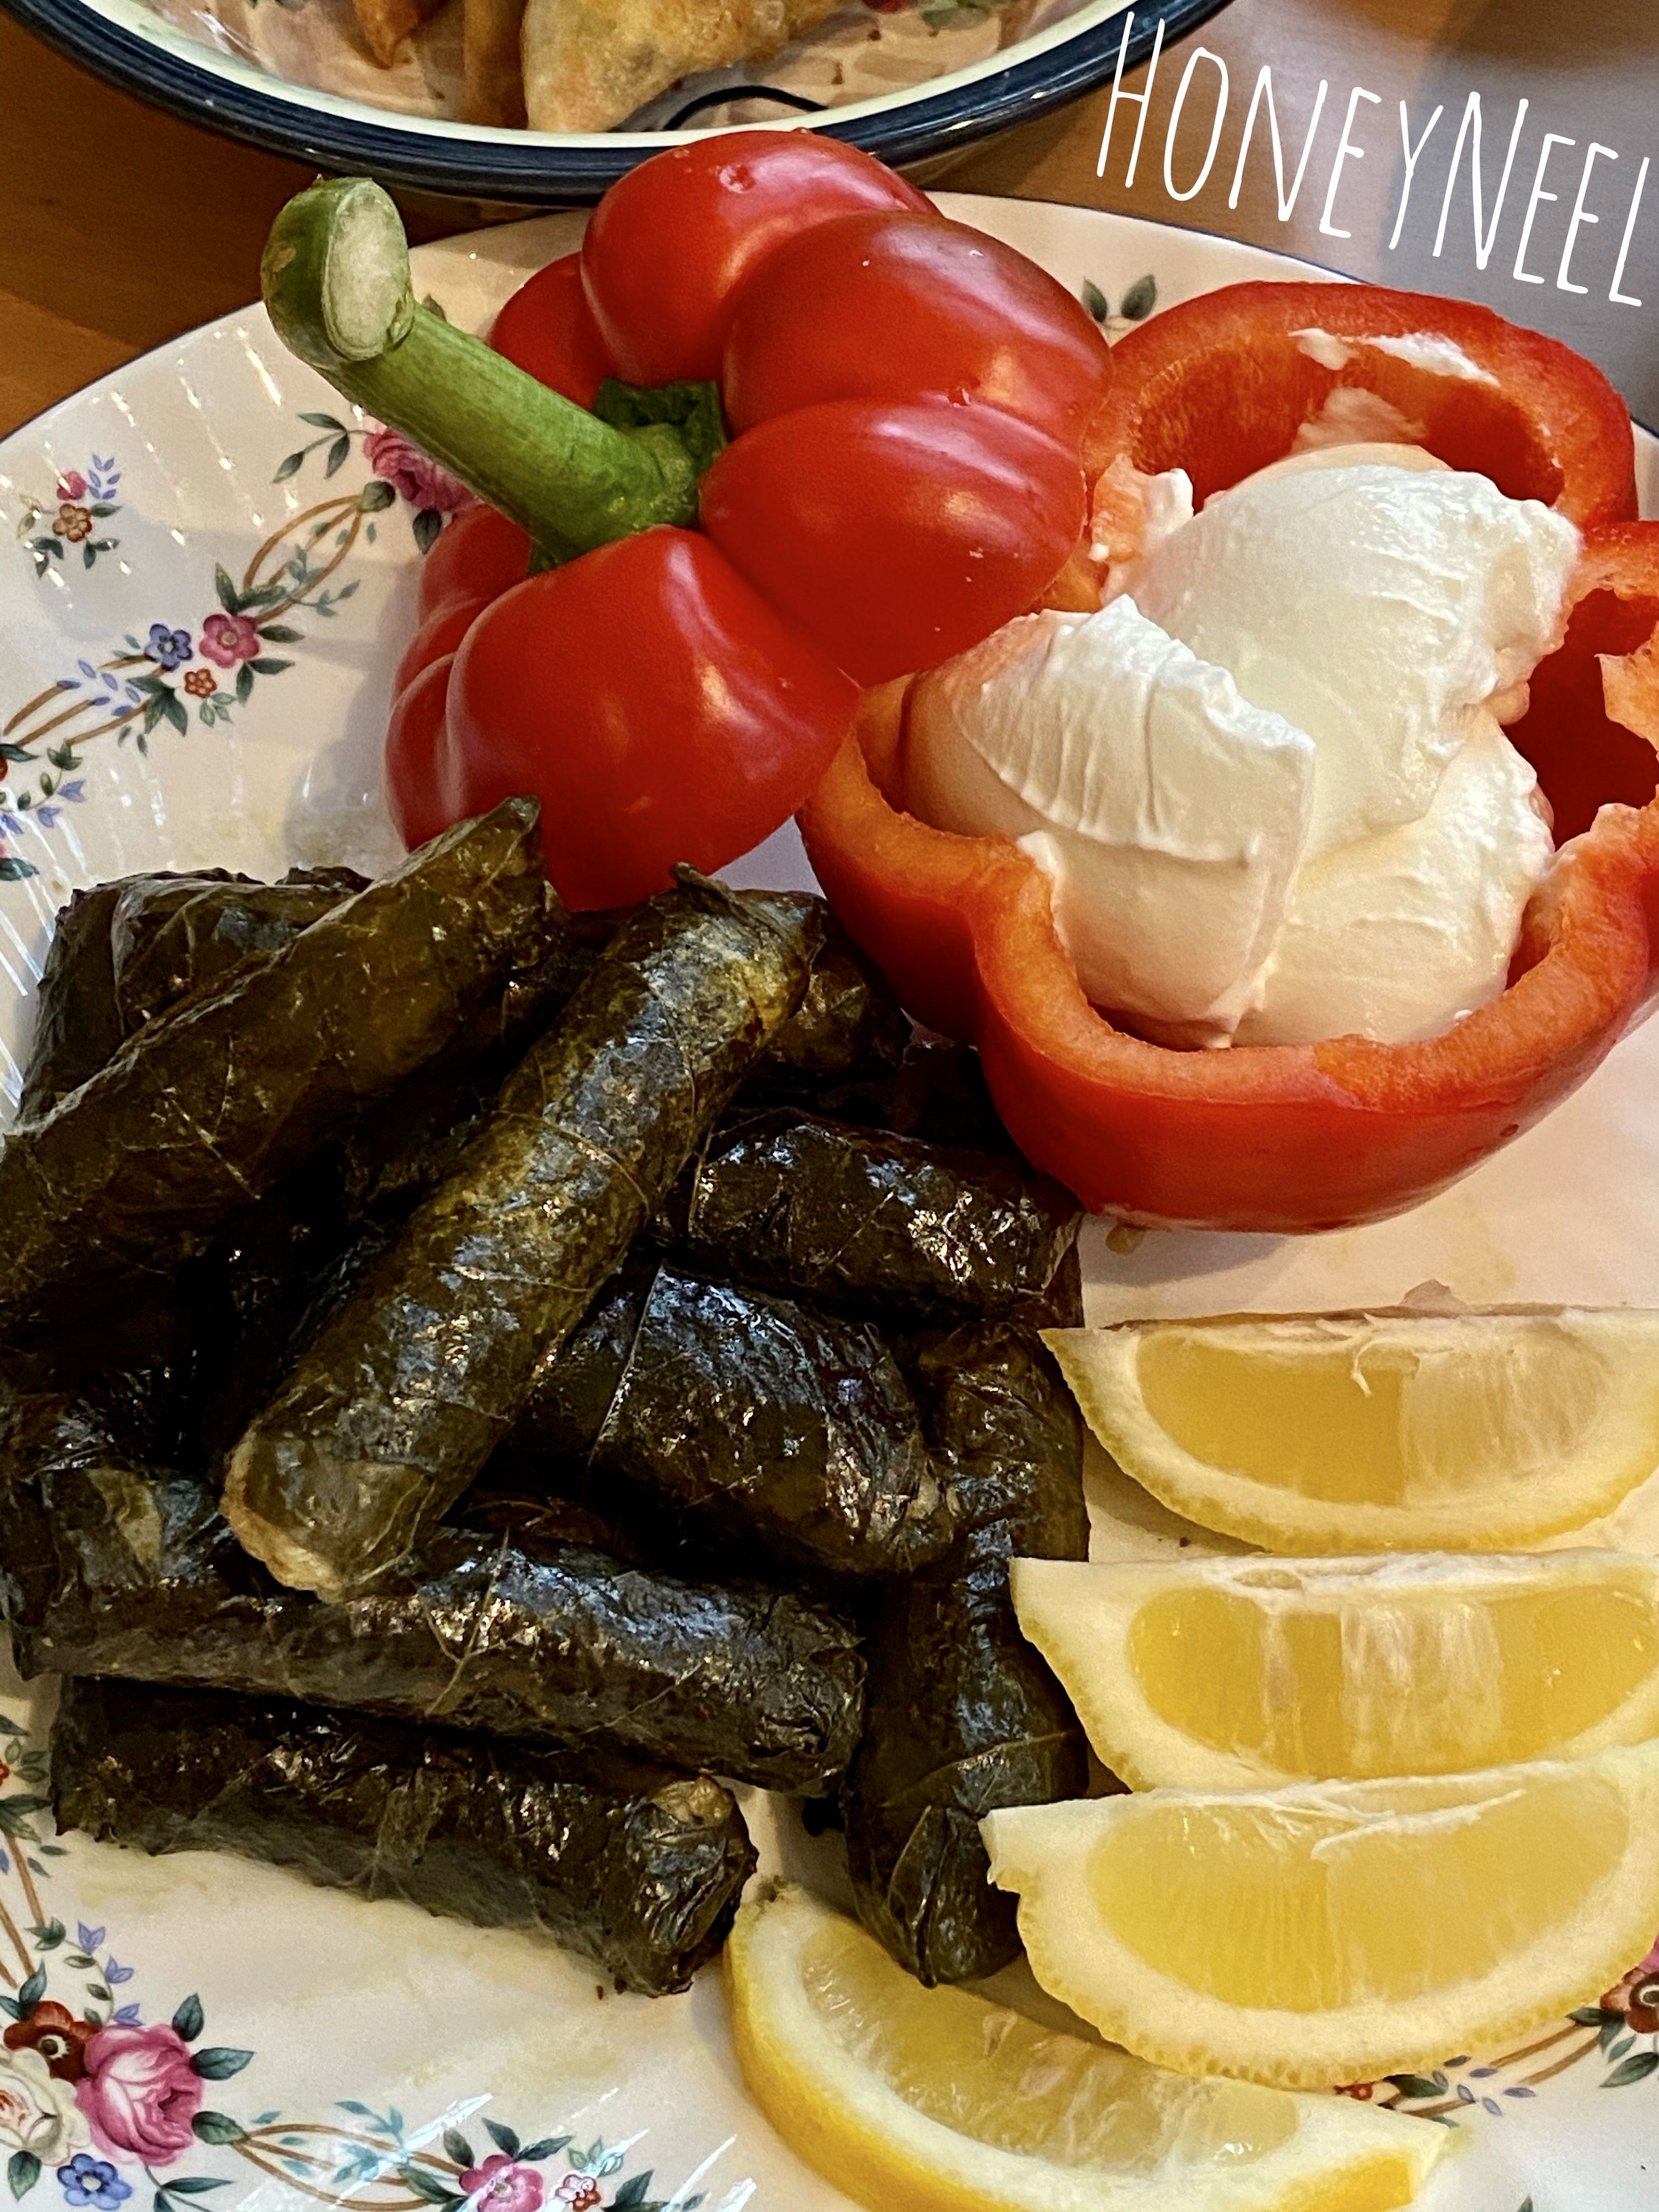 Yummy Recipe For Veggie Stuffed Grape Leaves Yallanji Tadsty Easy Healthy Veggie Dolmas Please Subs Best Food Ever Delicious Healthy Stuffed Grape Leaves